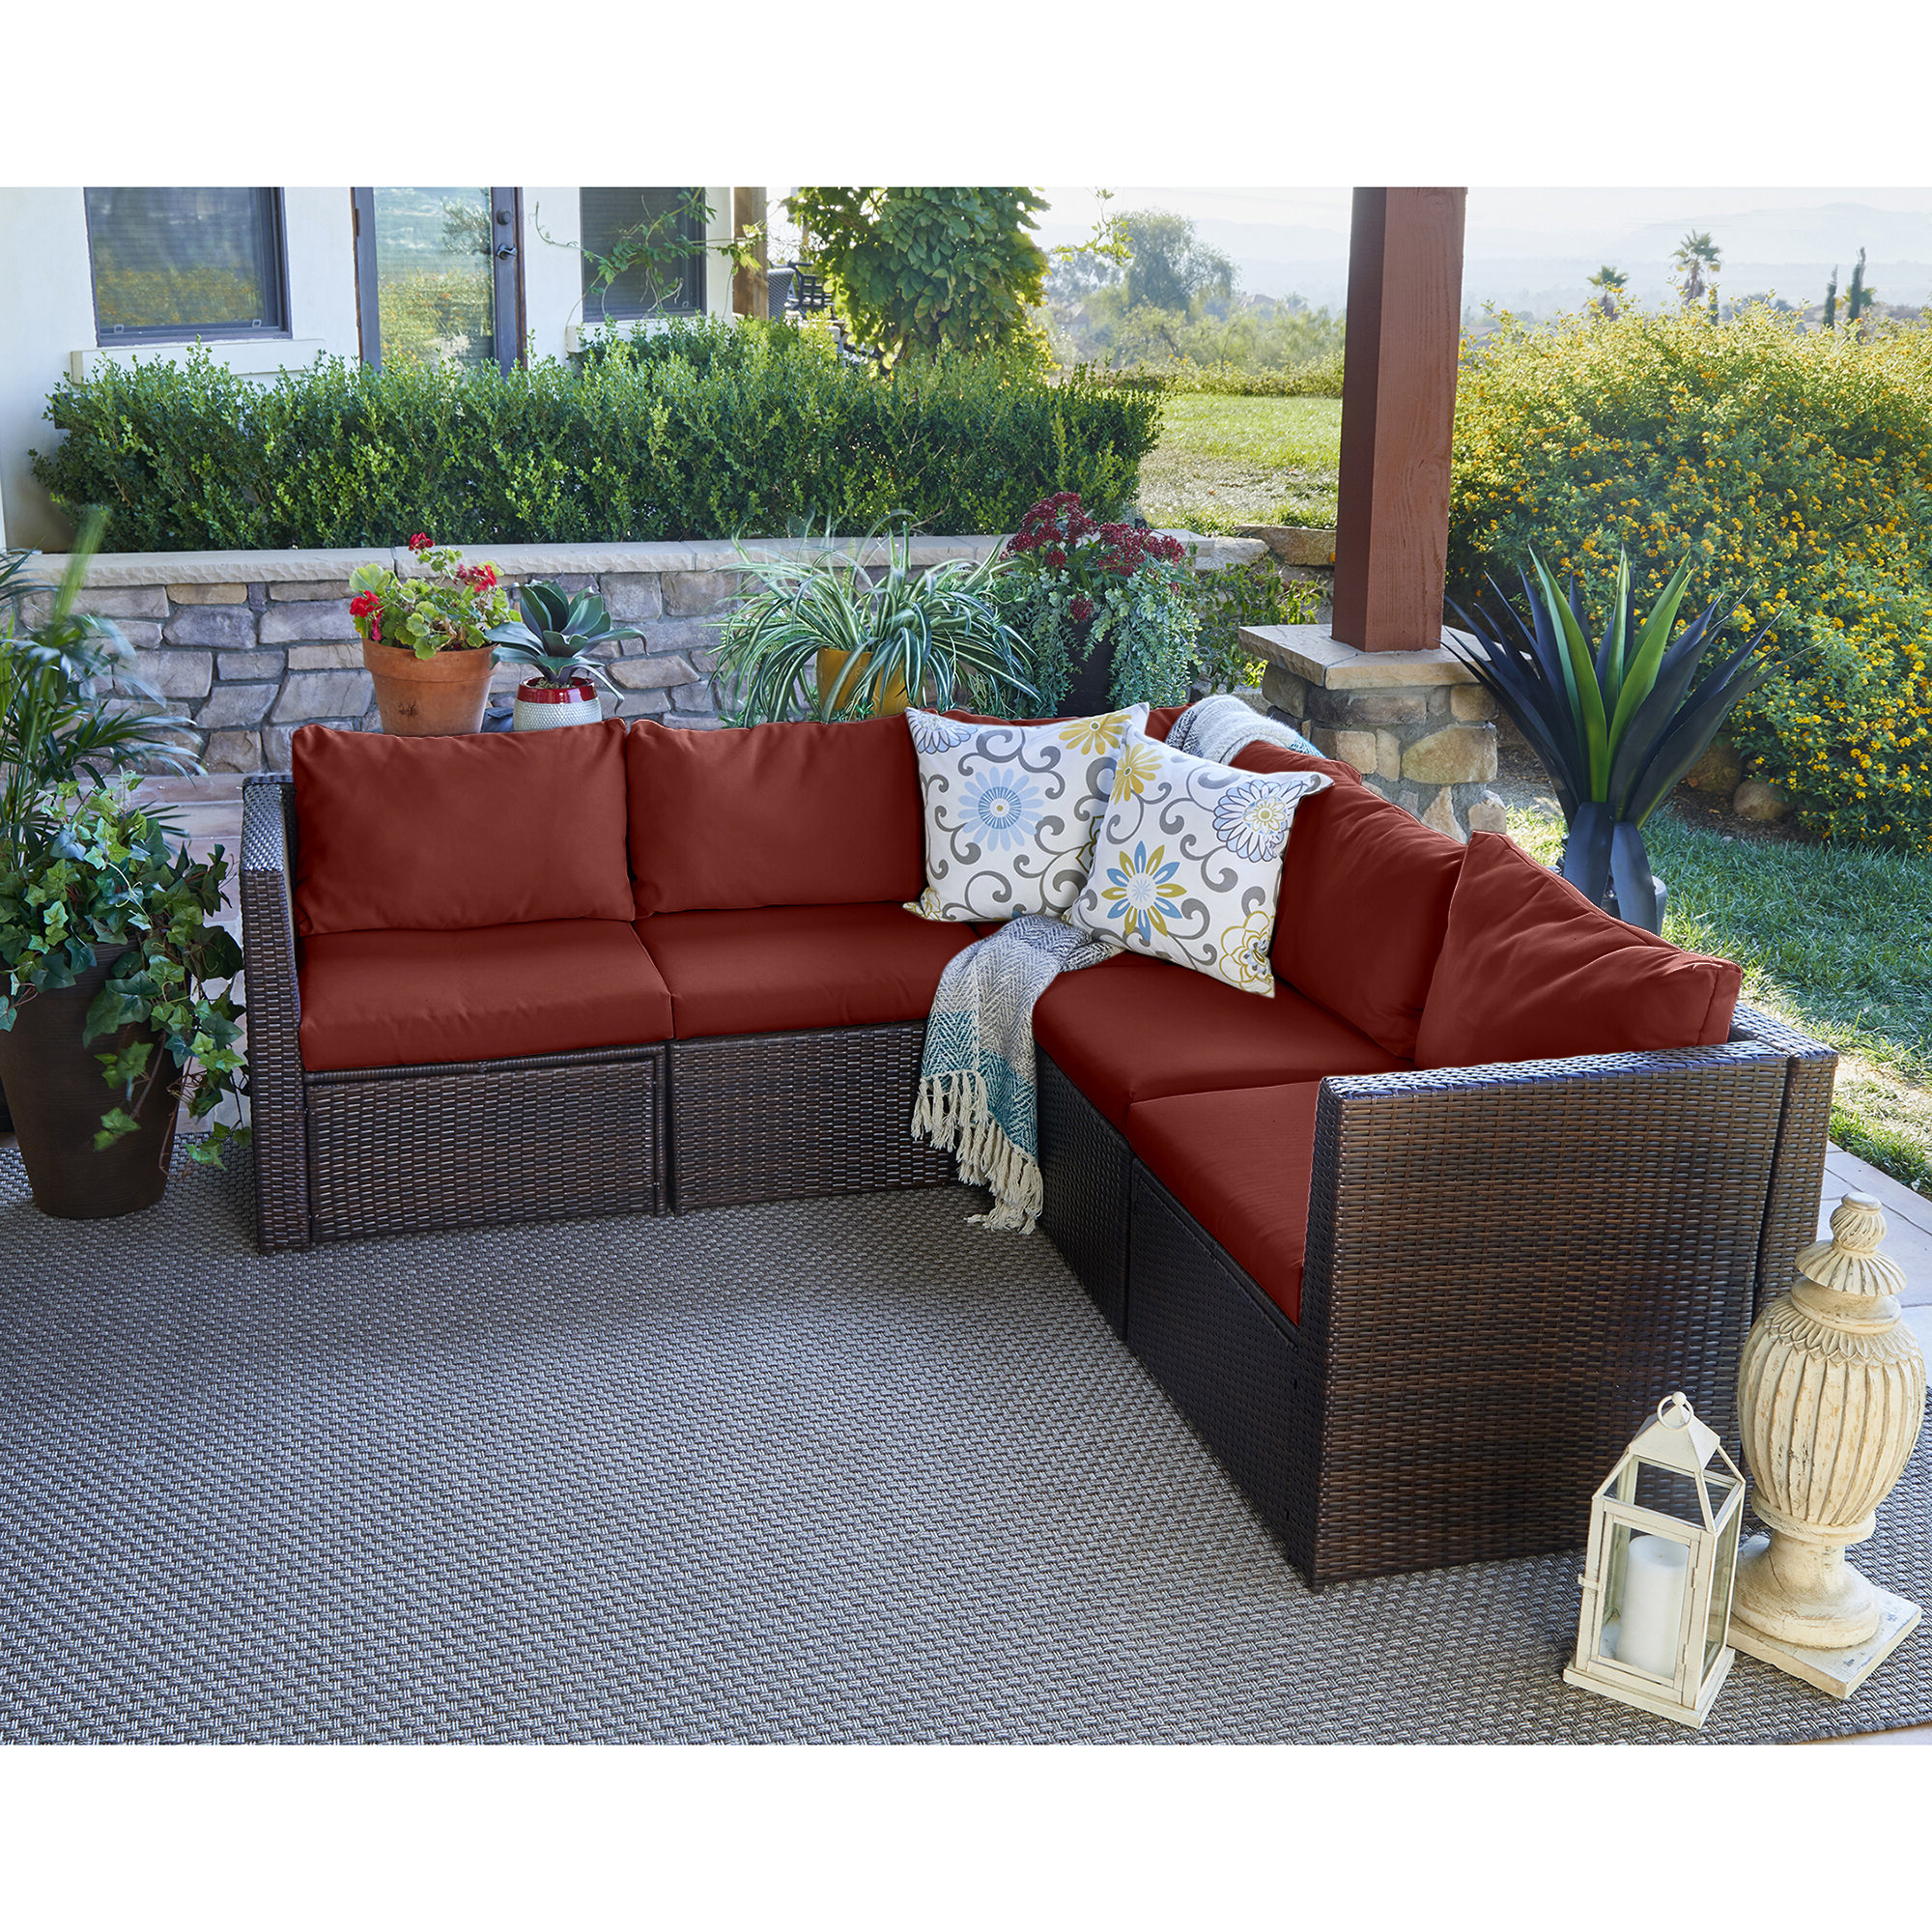 Fashionable Larsen Patio Sectional With Cushions Inside Larsen Patio Sectionals With Cushions (View 6 of 20)